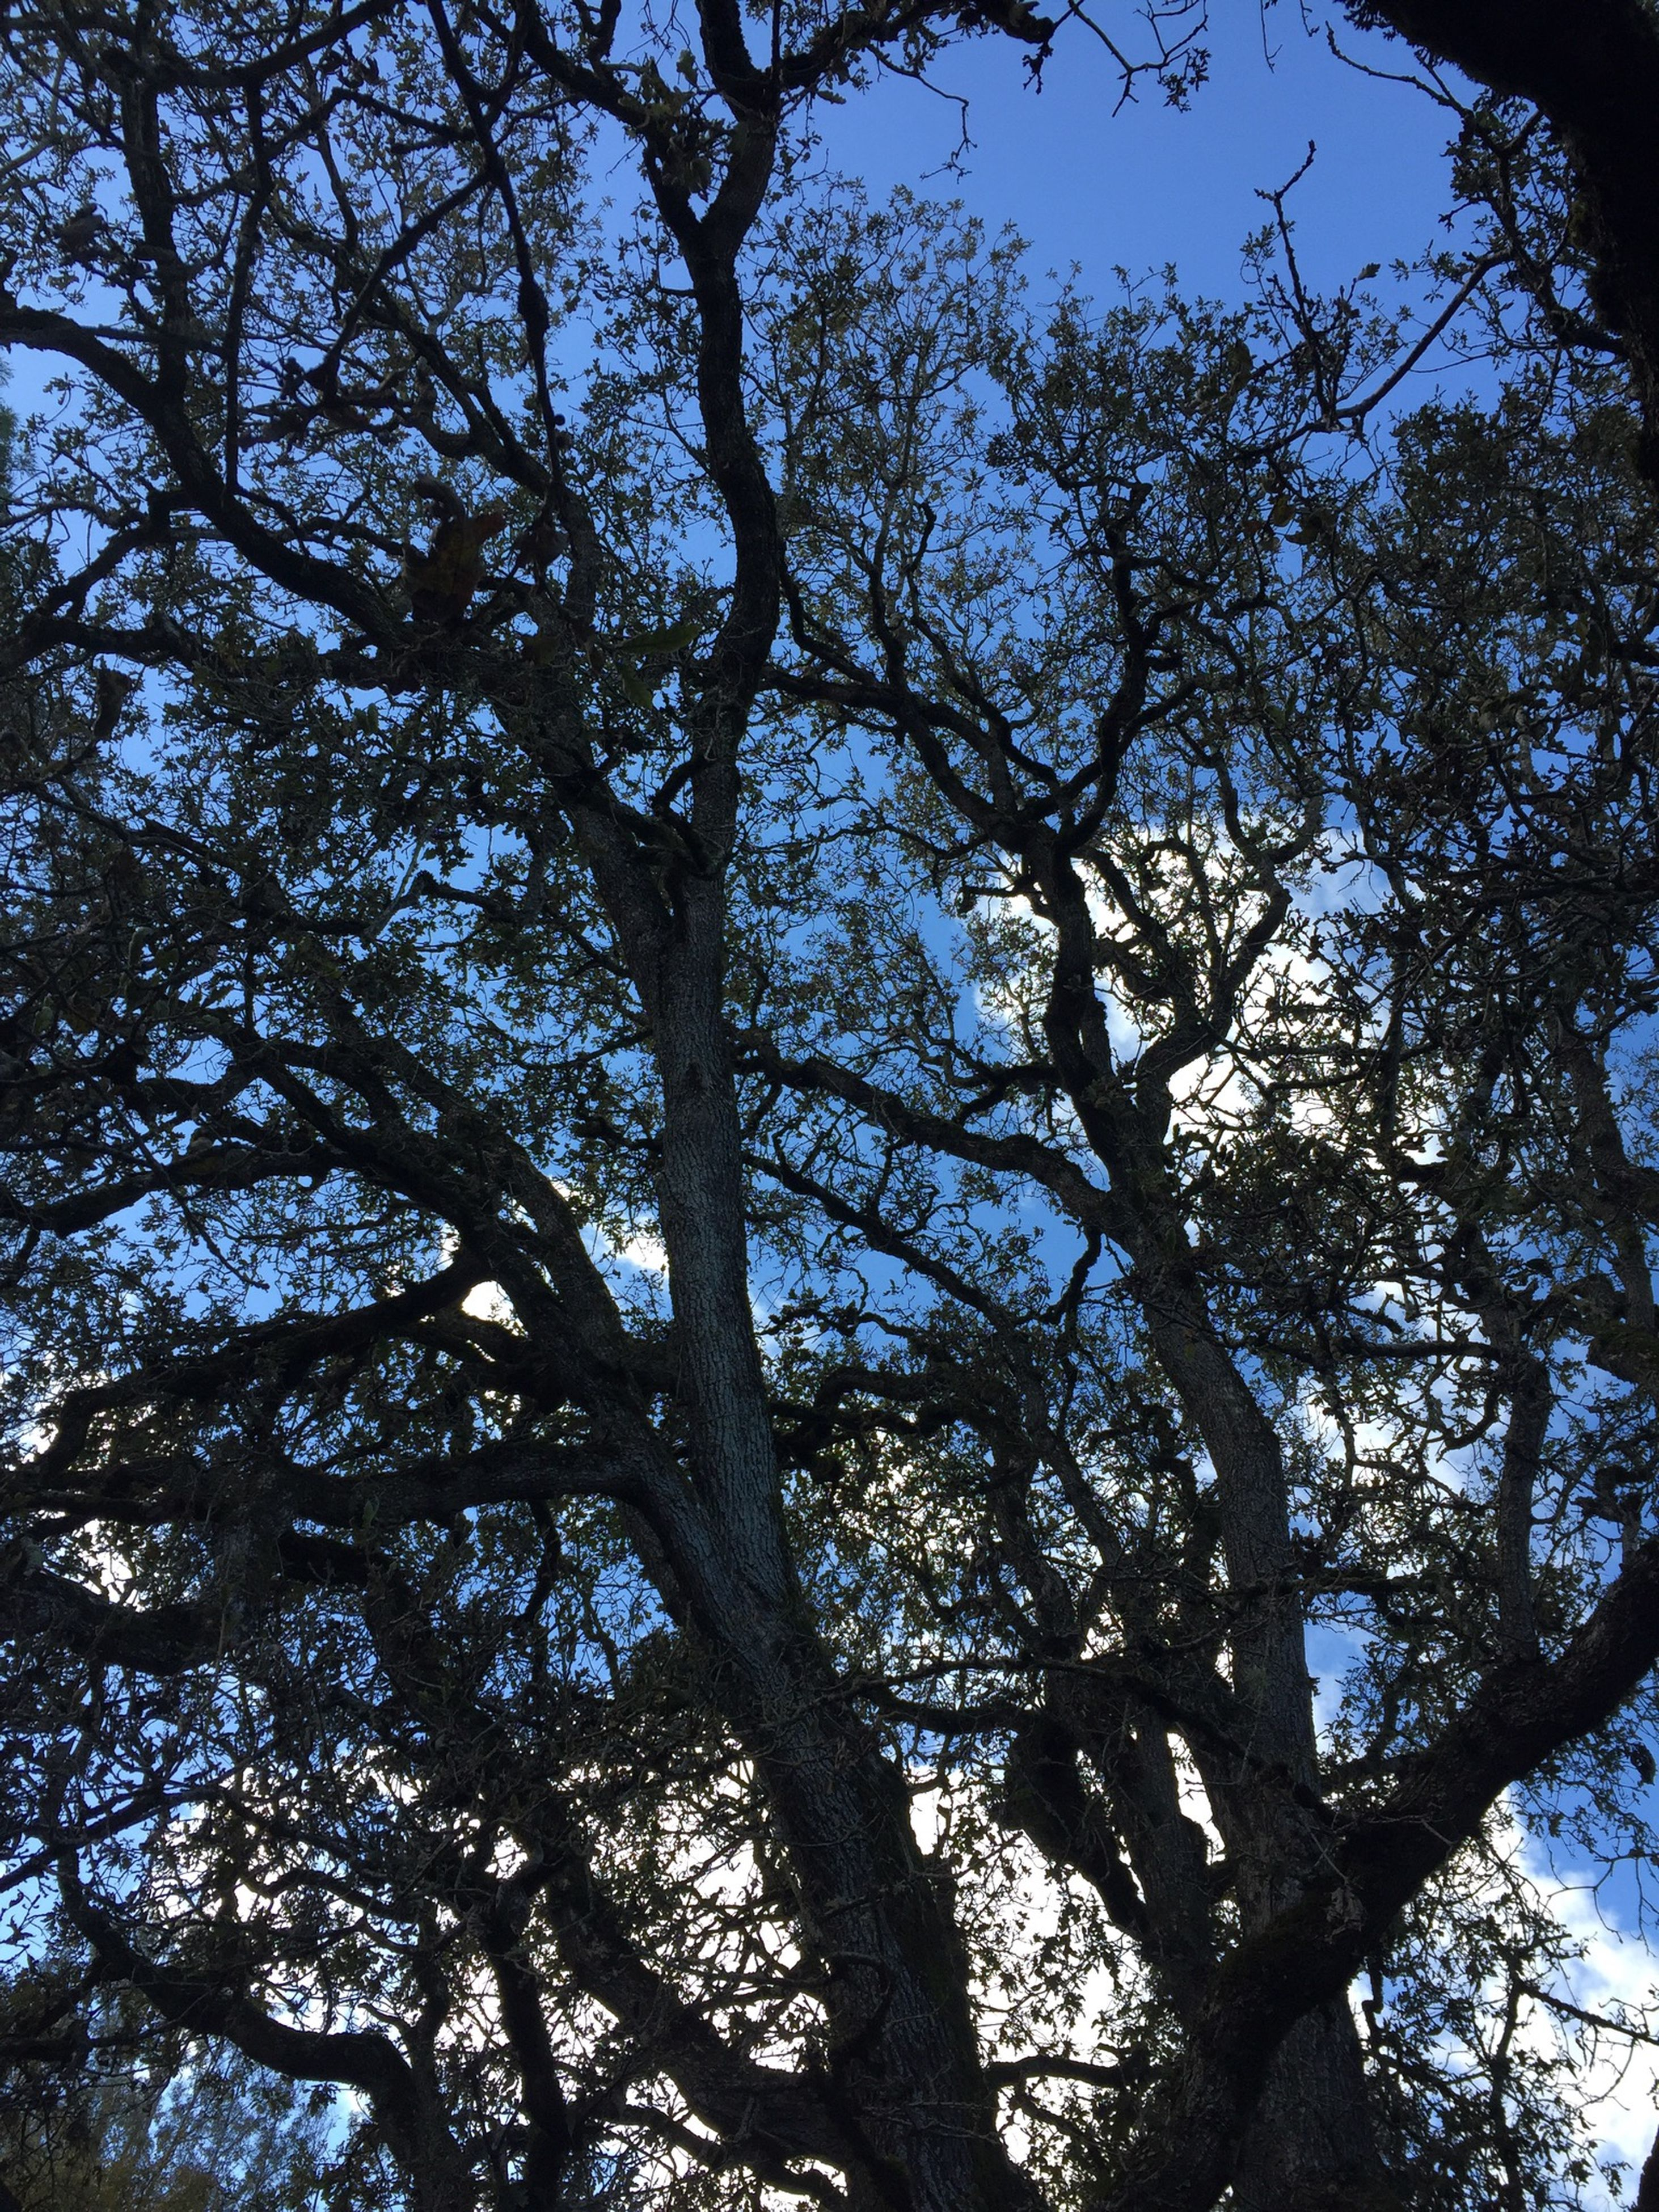 low angle view, tree, branch, growth, nature, tranquility, sky, beauty in nature, clear sky, backgrounds, full frame, bare tree, day, outdoors, no people, tree trunk, scenics, sunlight, directly below, blue